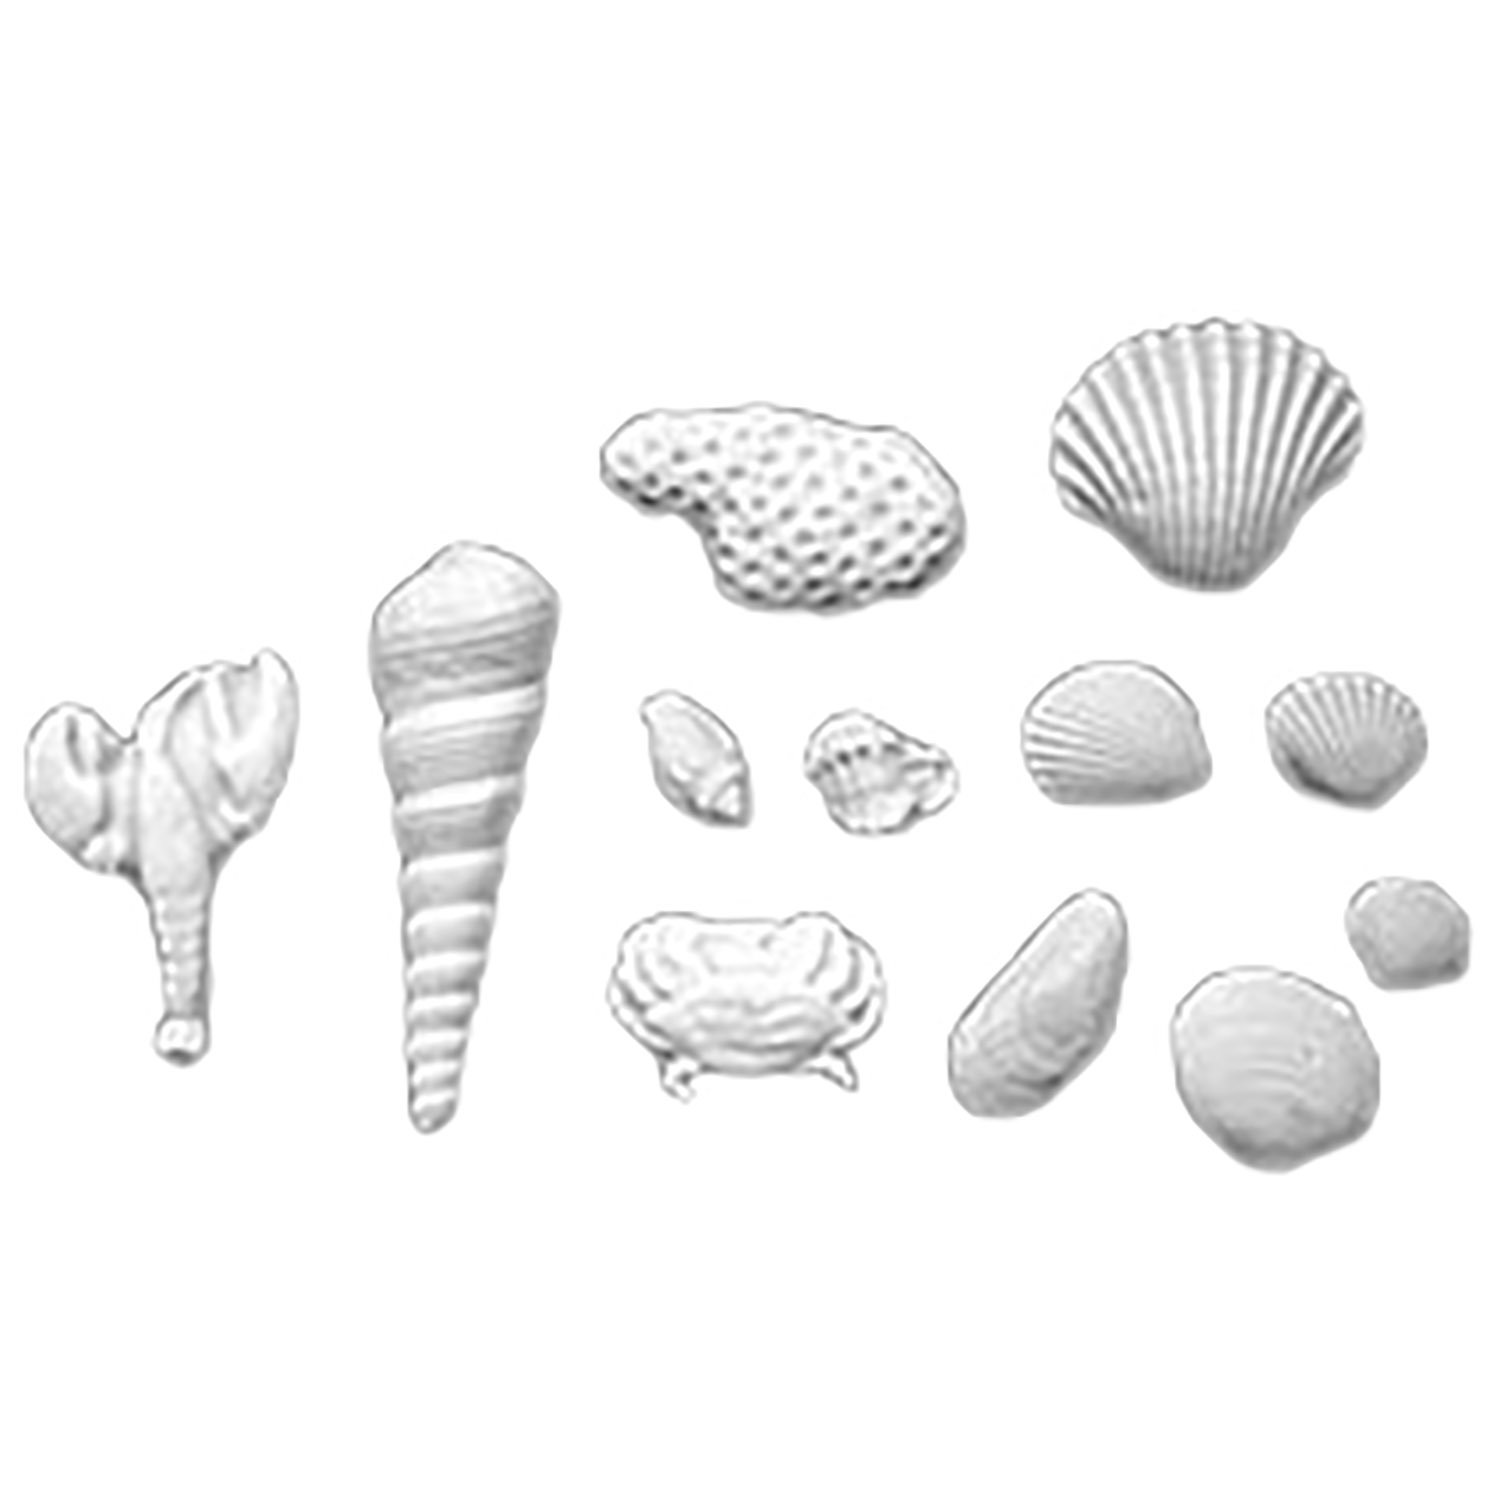 White Fondant Sea Shell Assortment